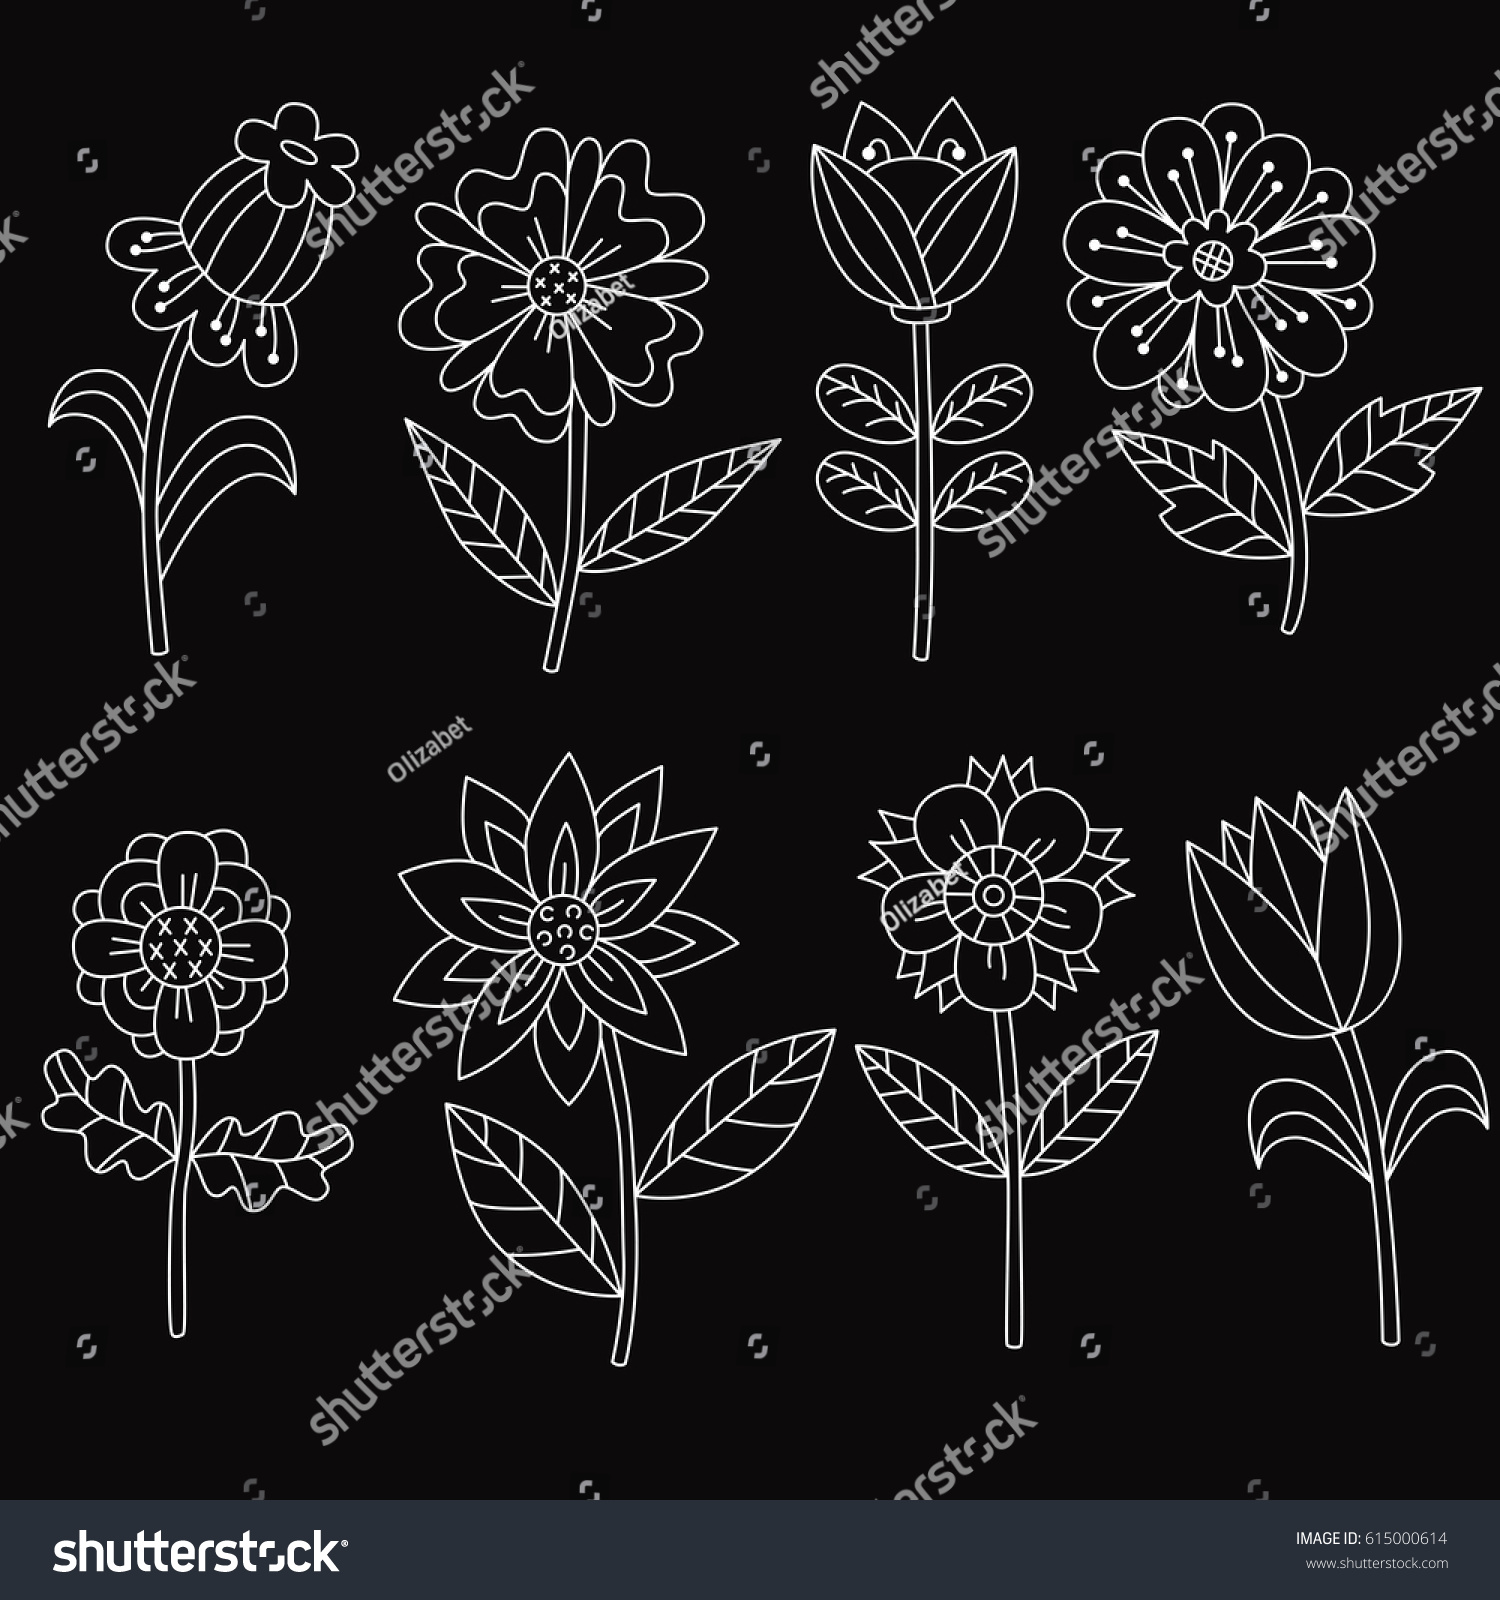 Black and white doodle different flowers cute nice adorable floral icons hand drawn childish drawing